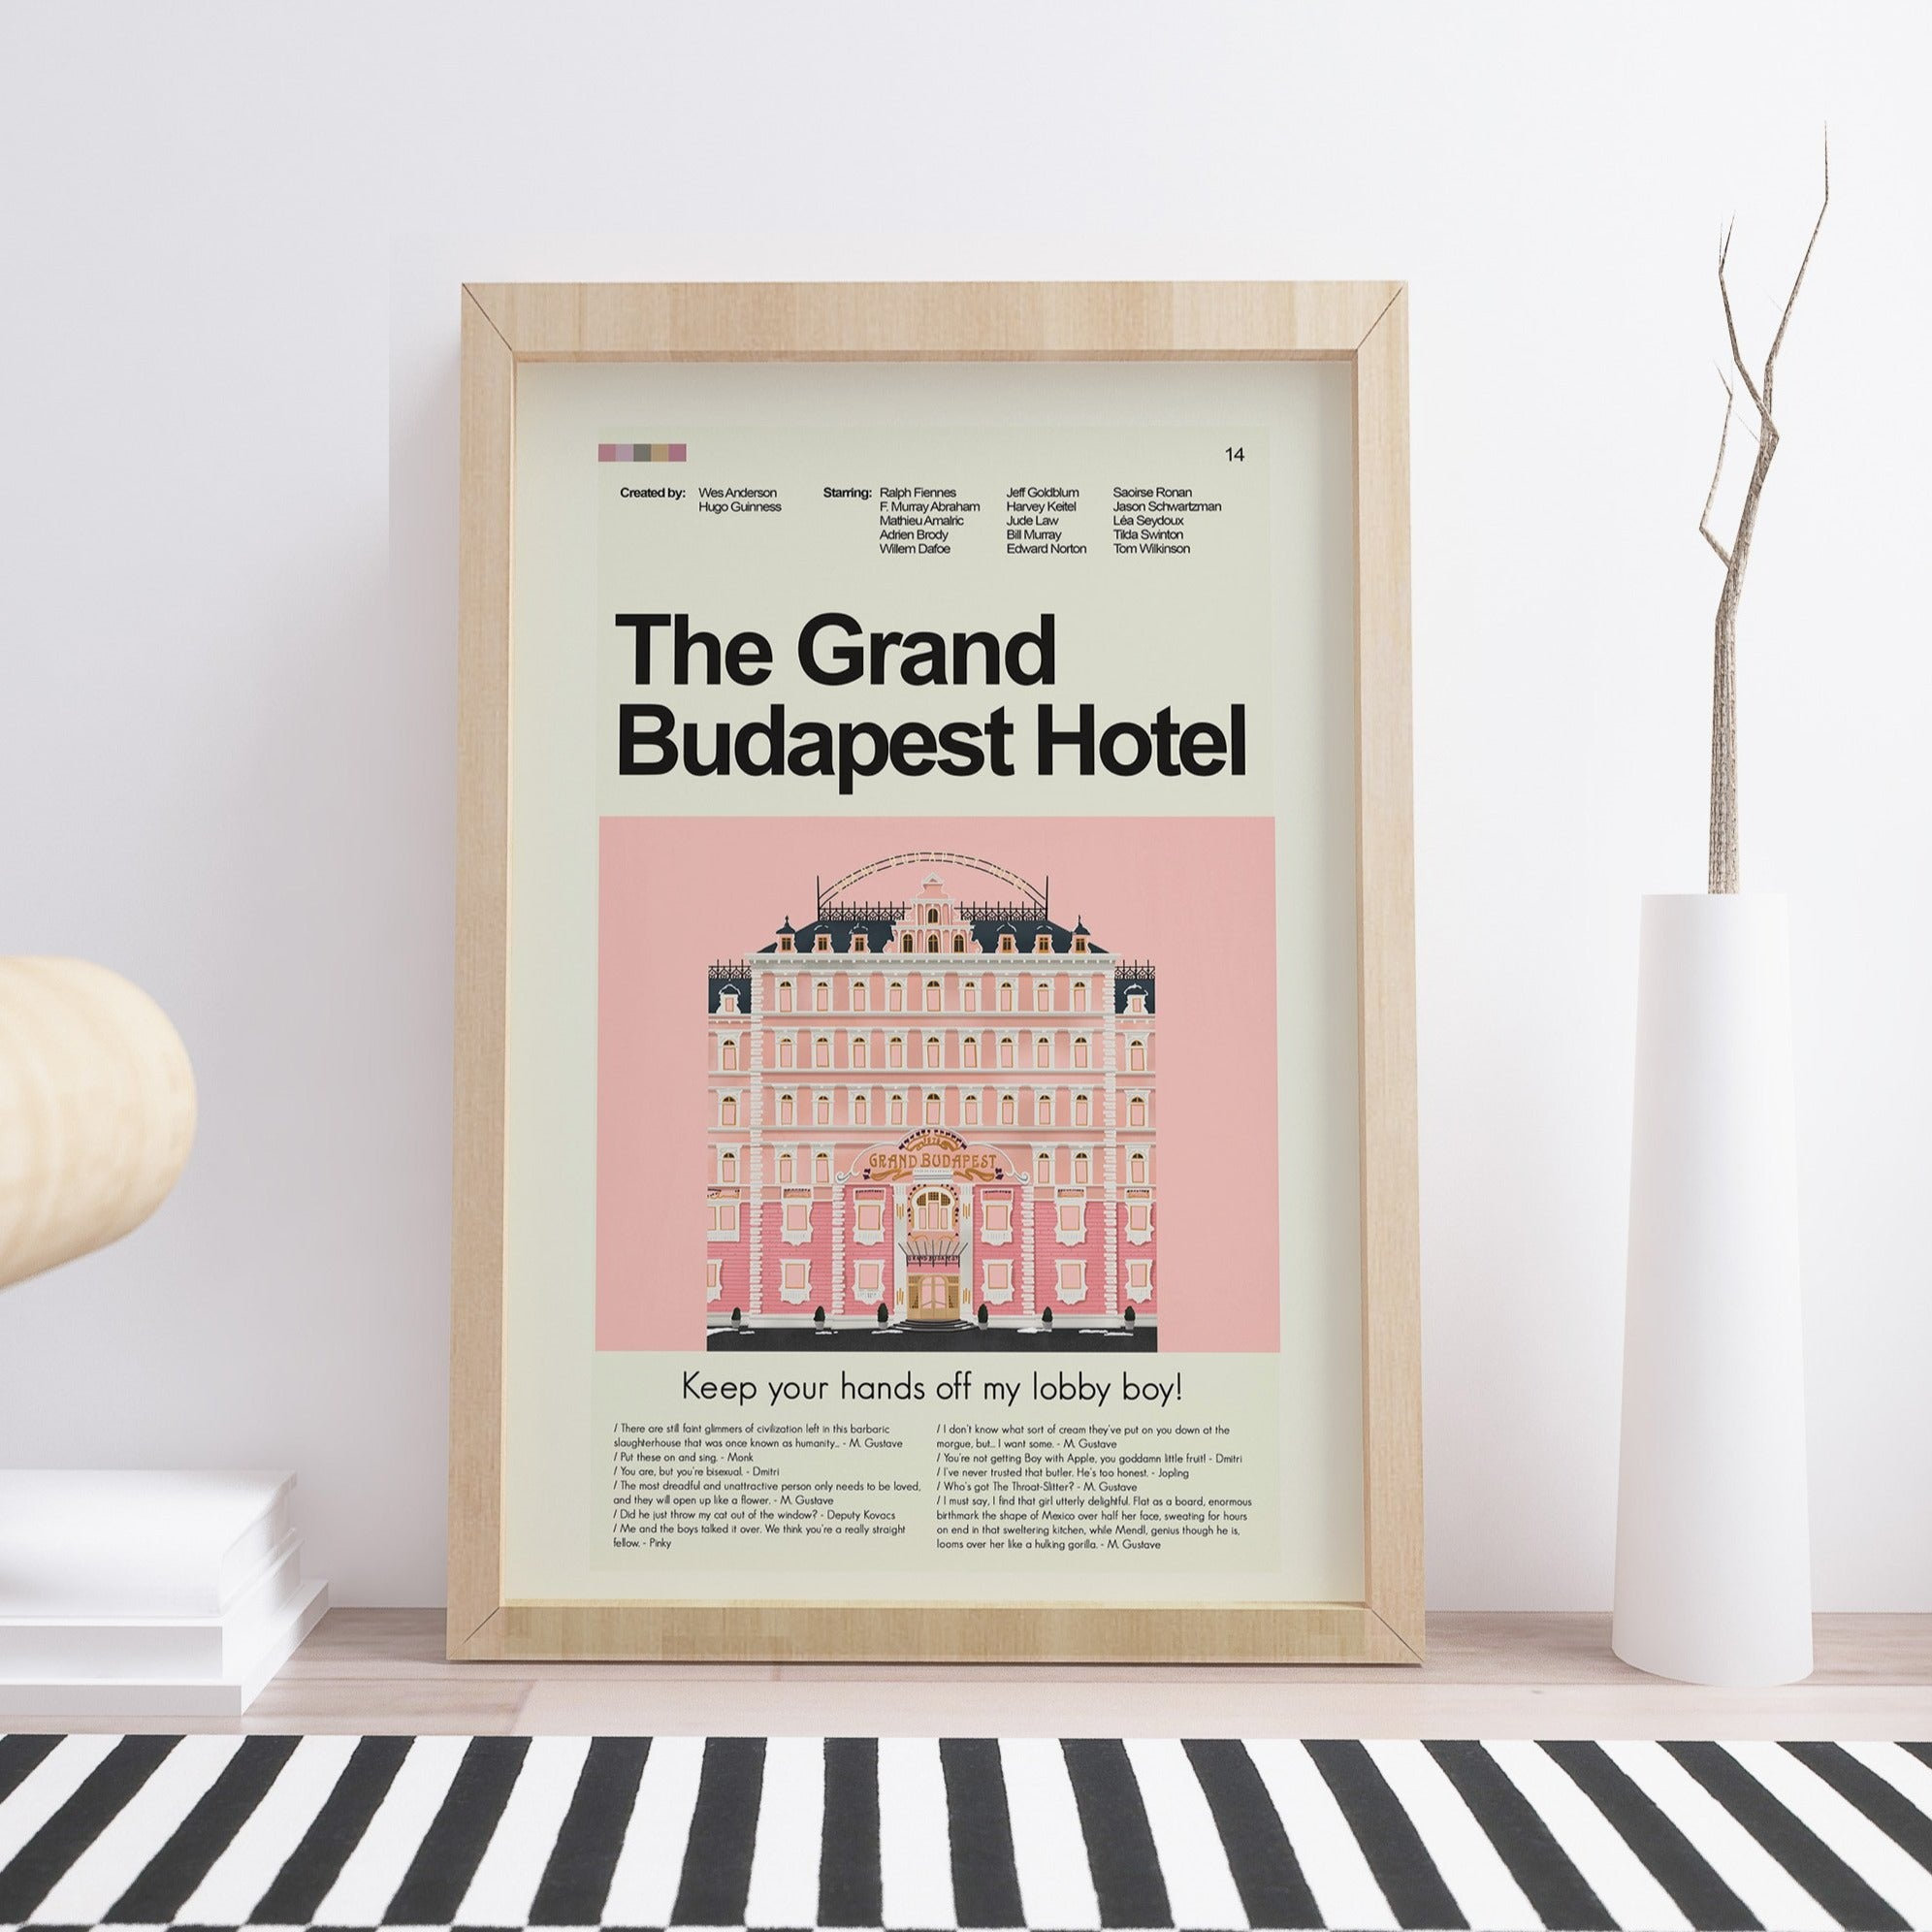 The Grand Budapest Hotel Inspired Mid-Century Modern Print 12x18 | Print only